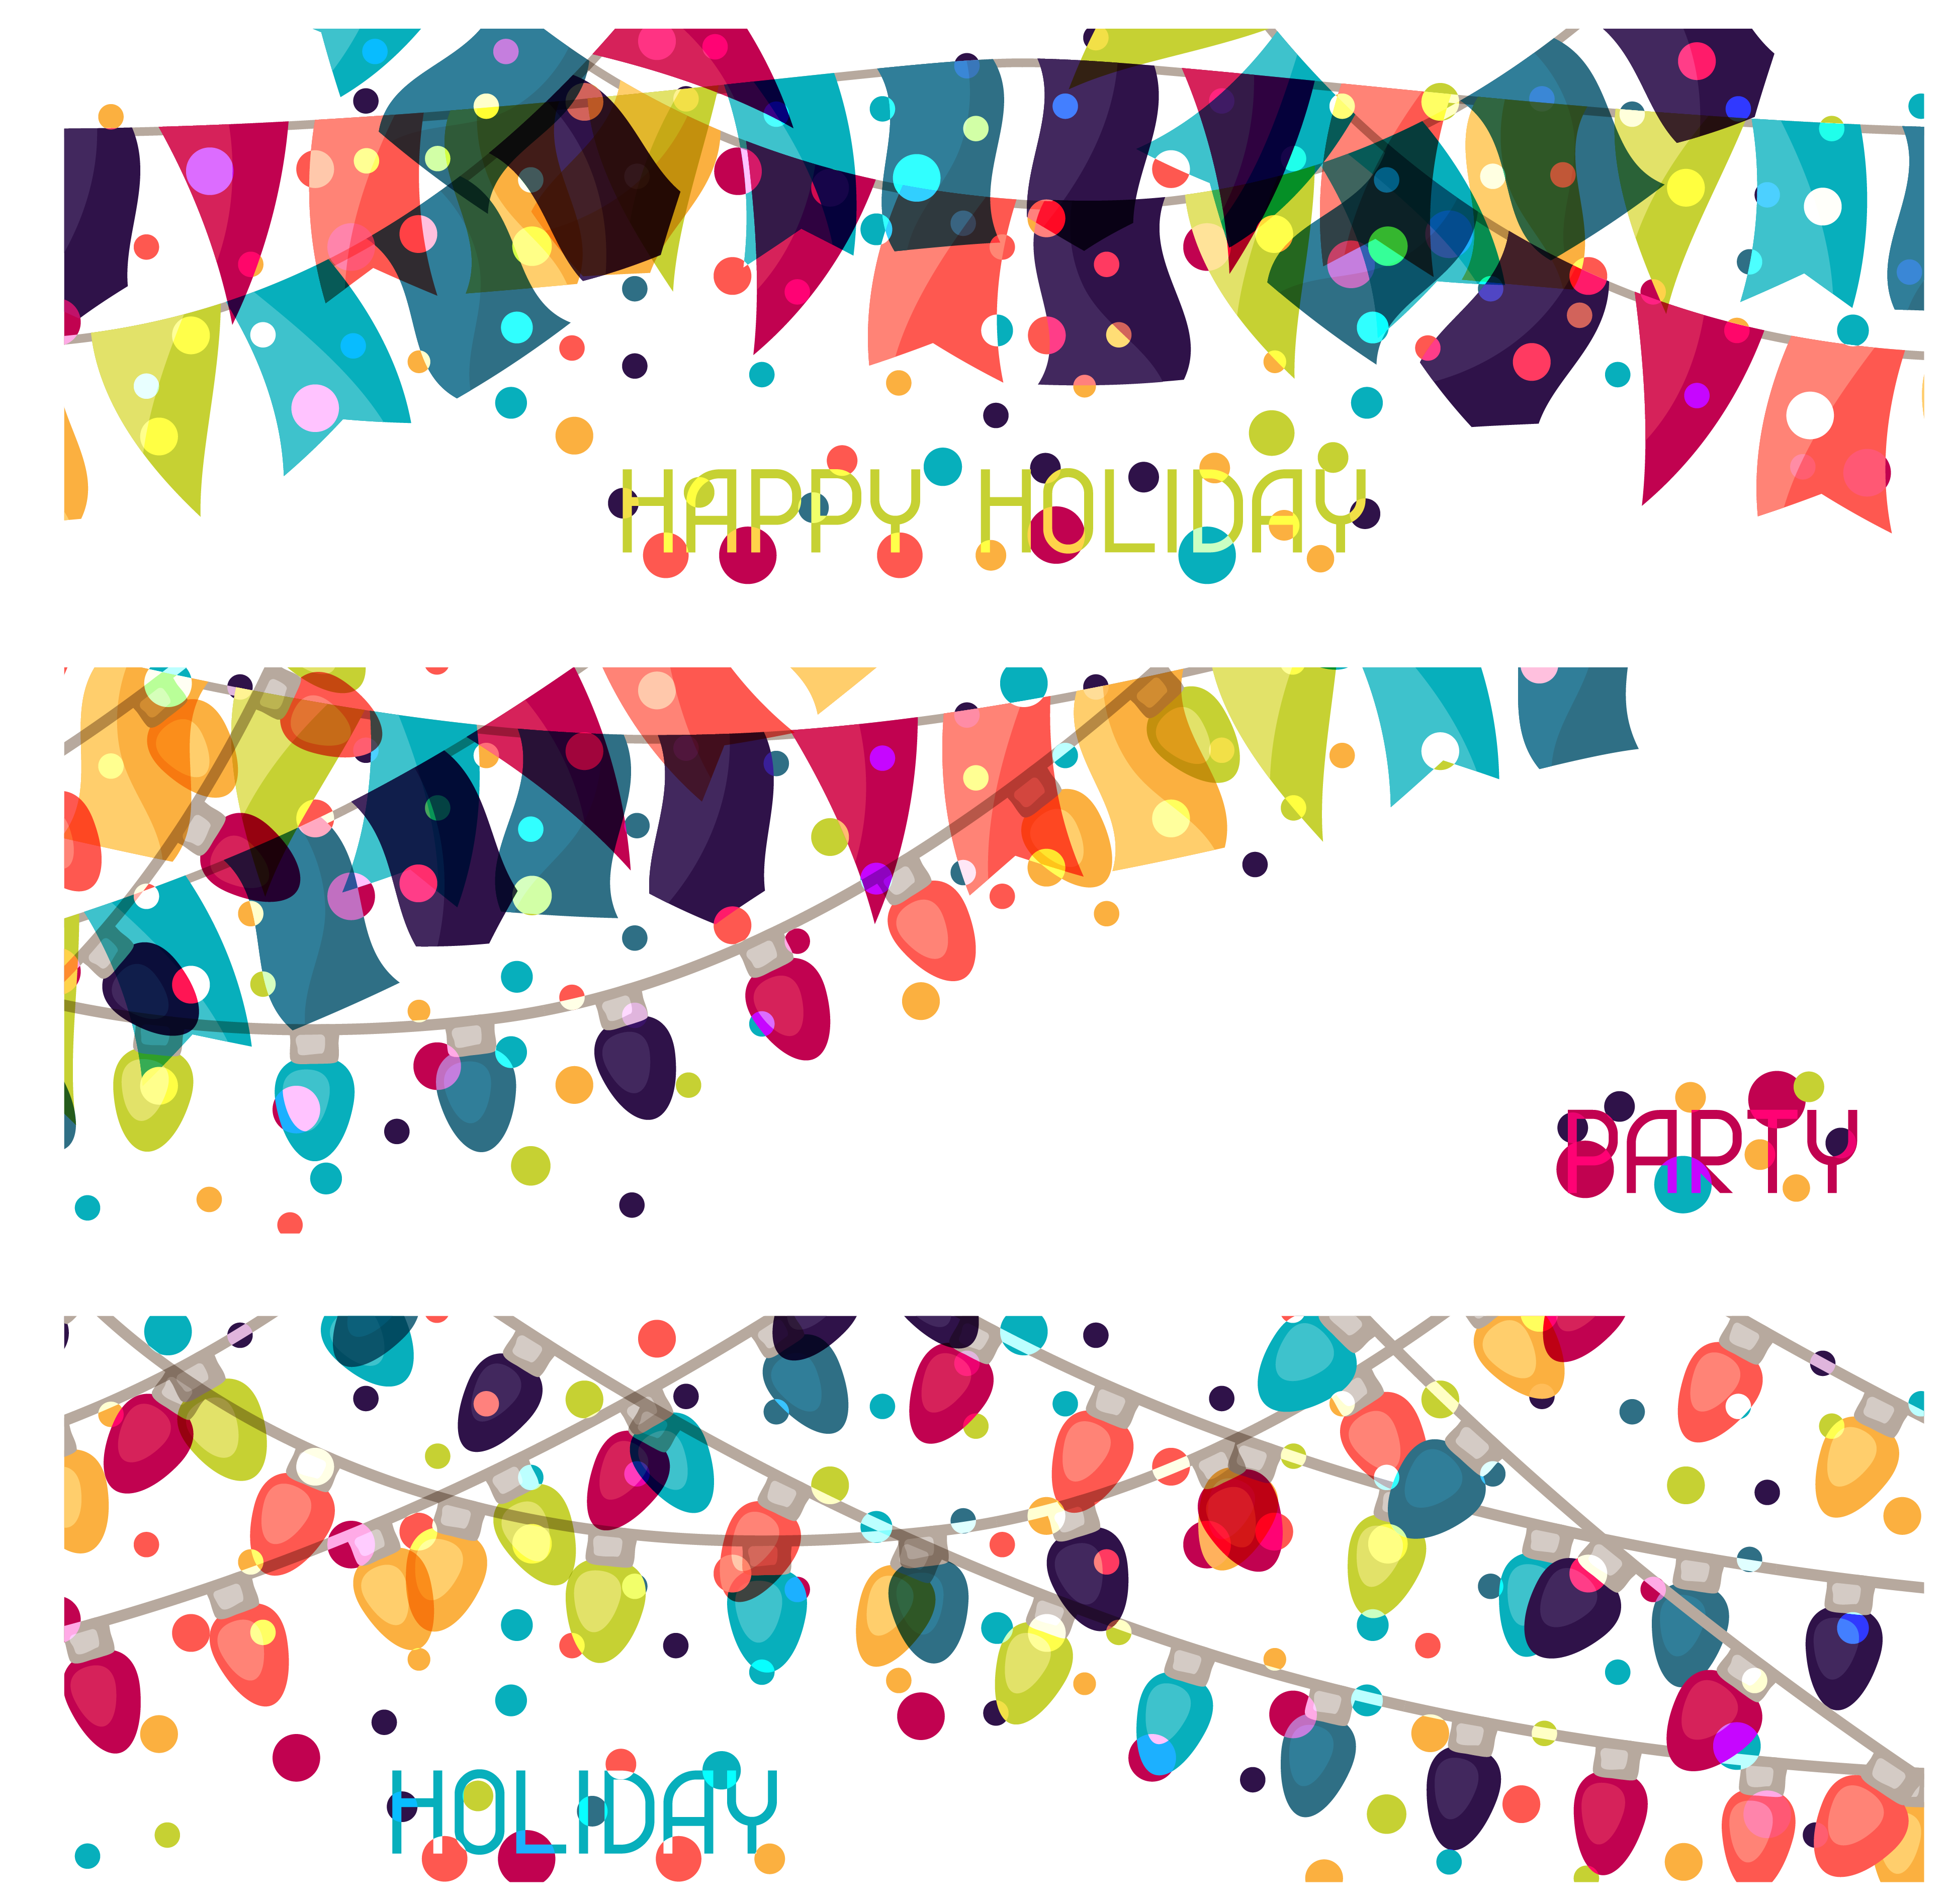 Carnival clipart flag banner. Holiday clip art color